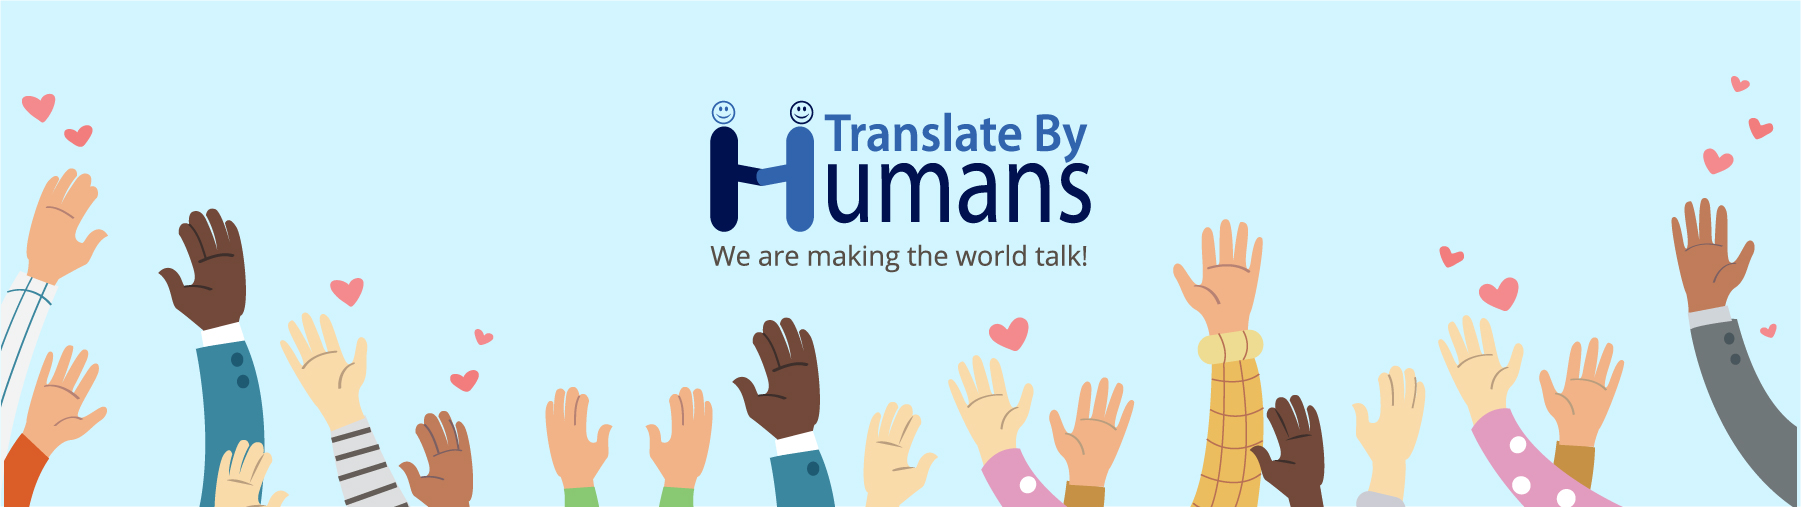 Translate By Humans COVID19 Update